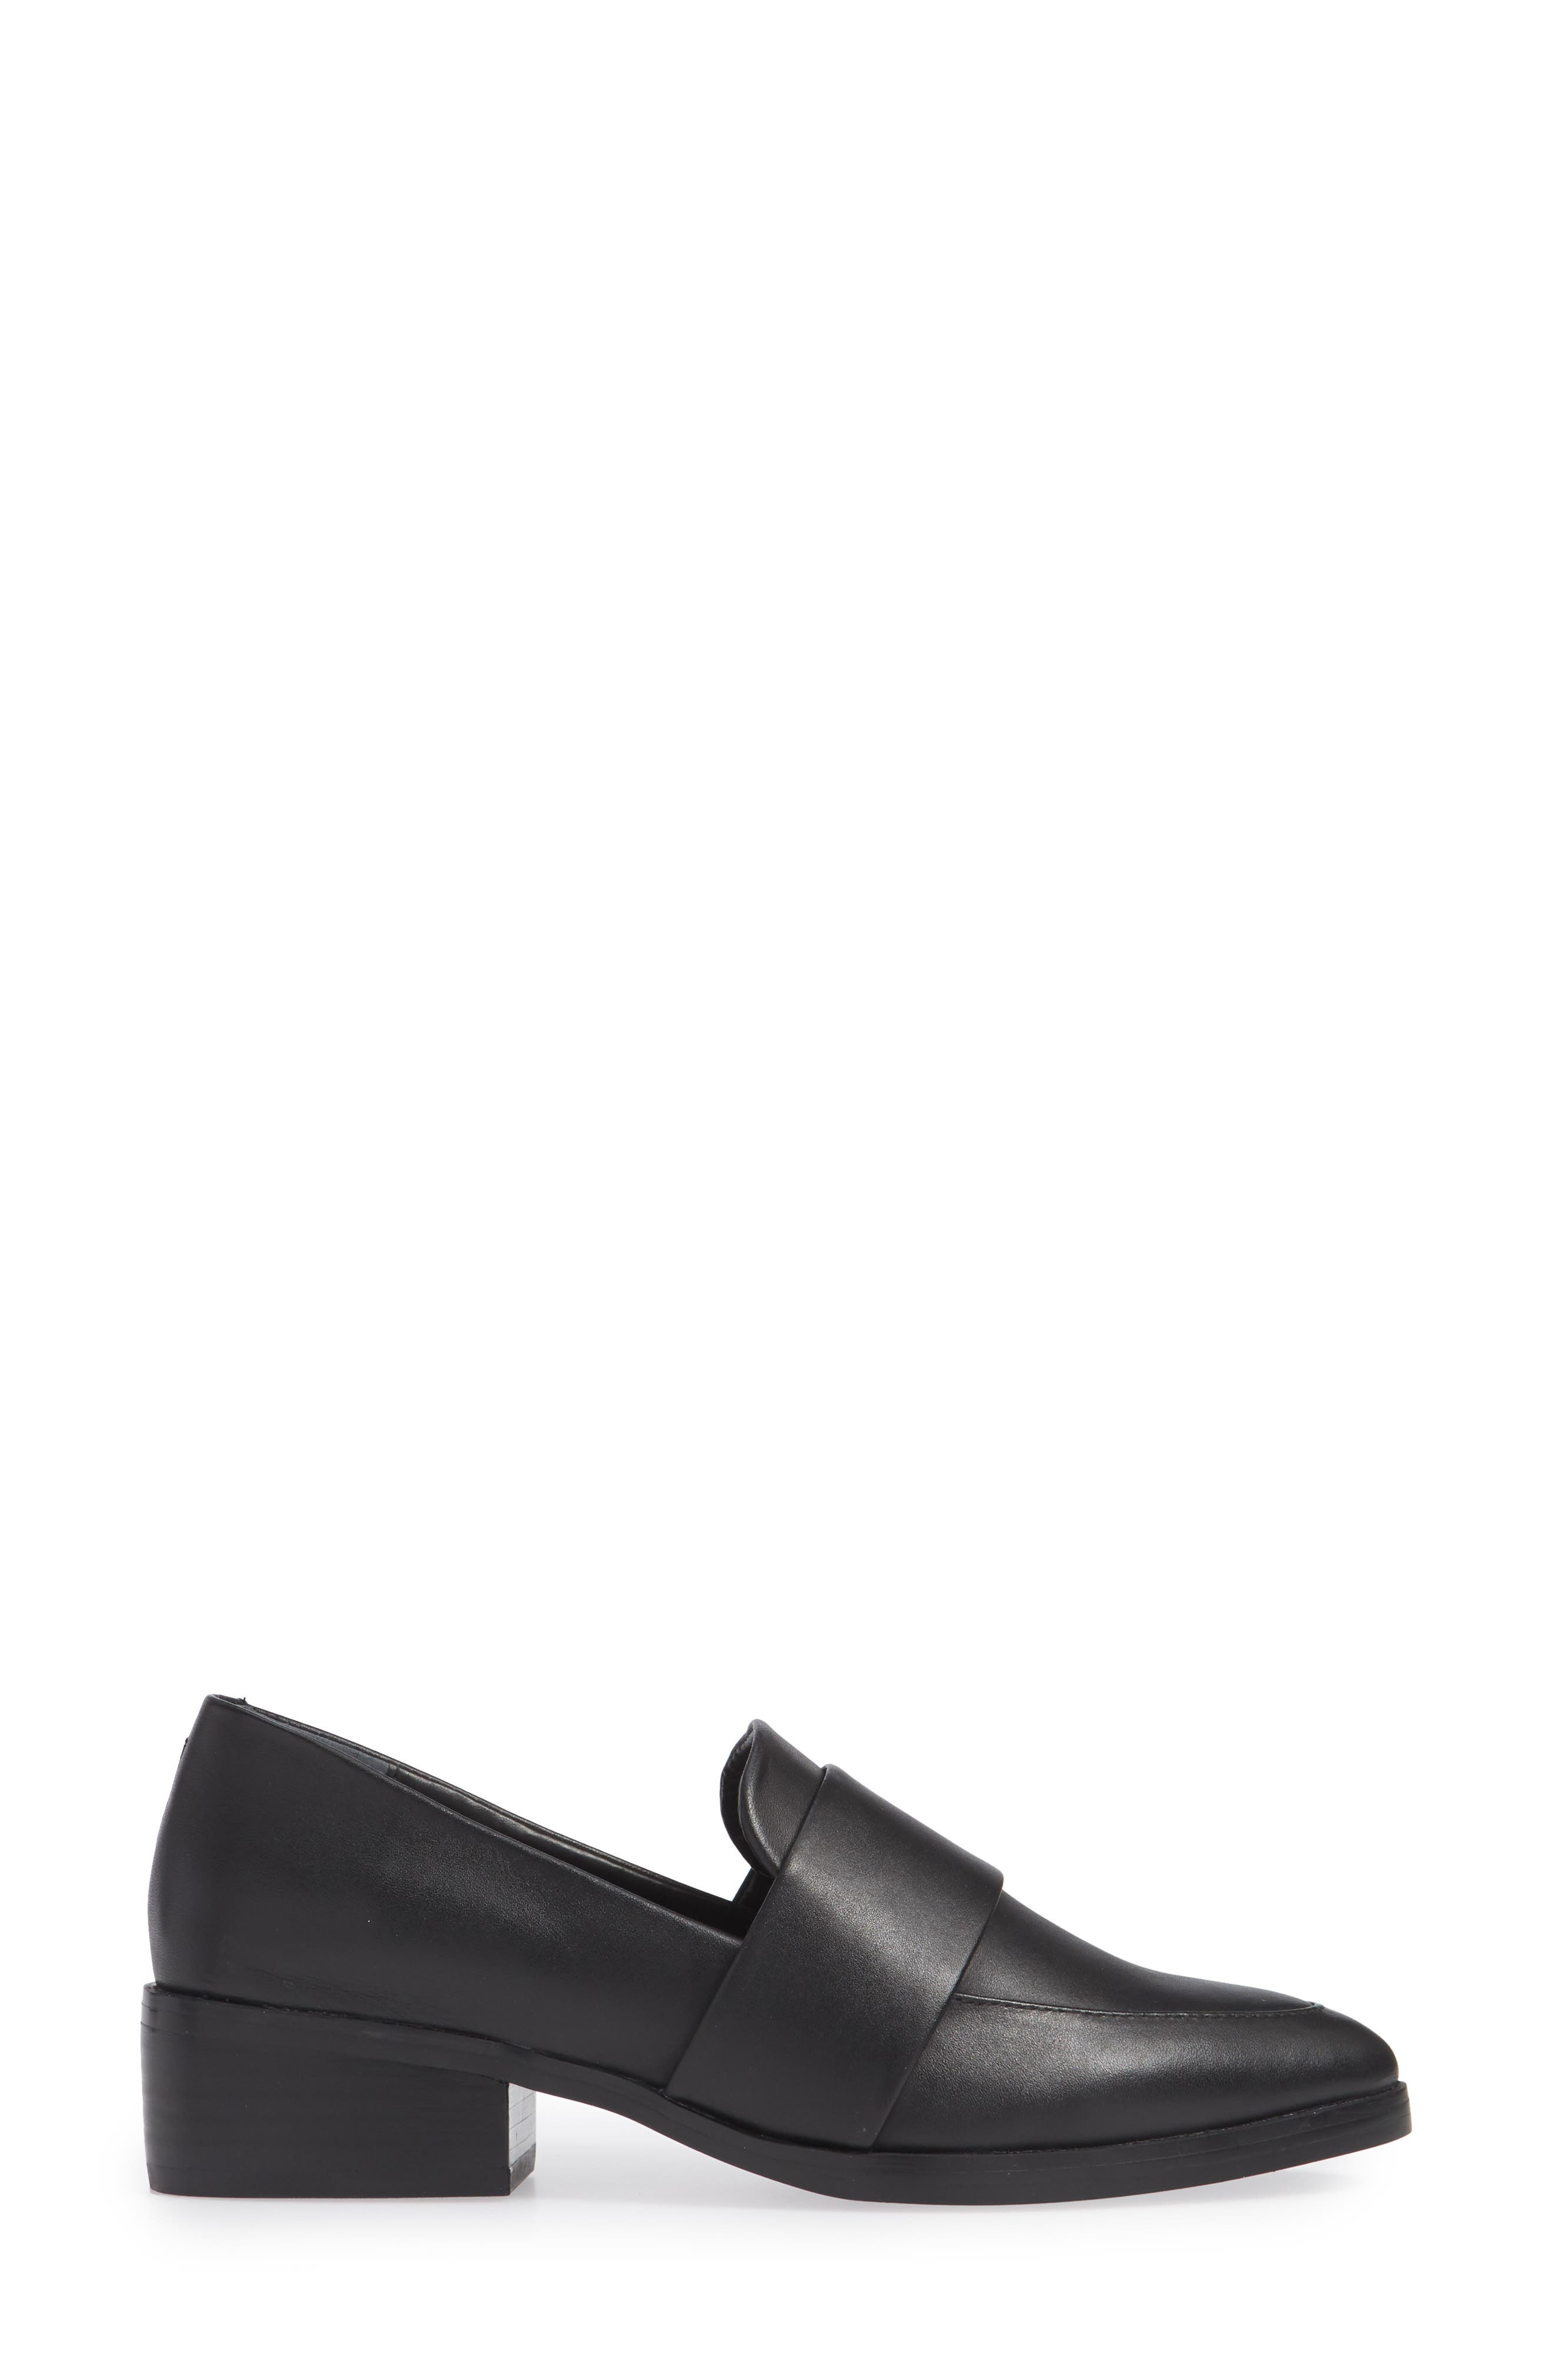 TONY BIANCO, Mayfair Loafer, Alternate thumbnail 3, color, BLACK LEATHER